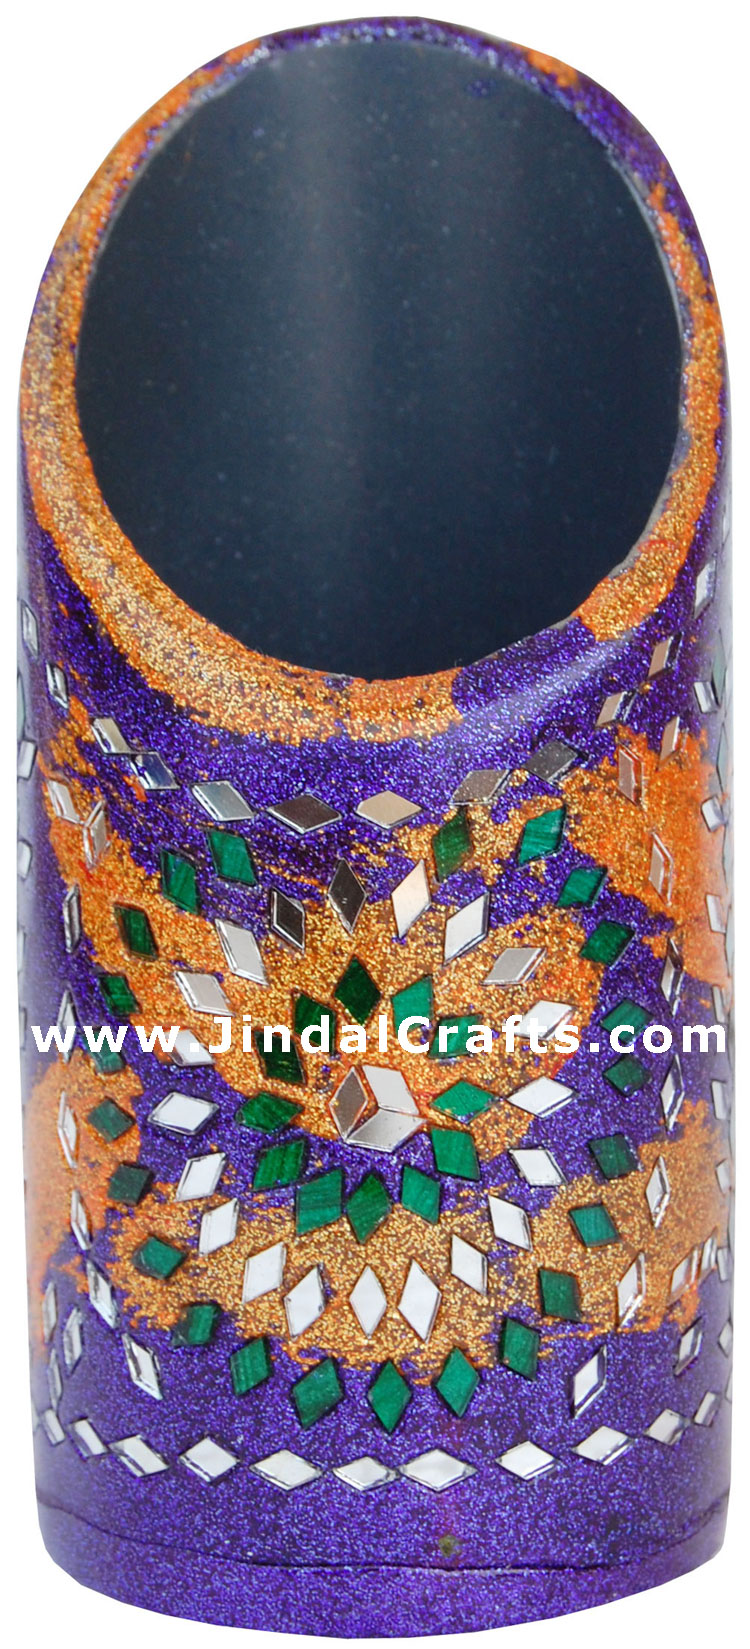 Handmade Decorative Lac Pen Stand from Indian Arts. Decorative Lac Pen Stand from Indian Arts